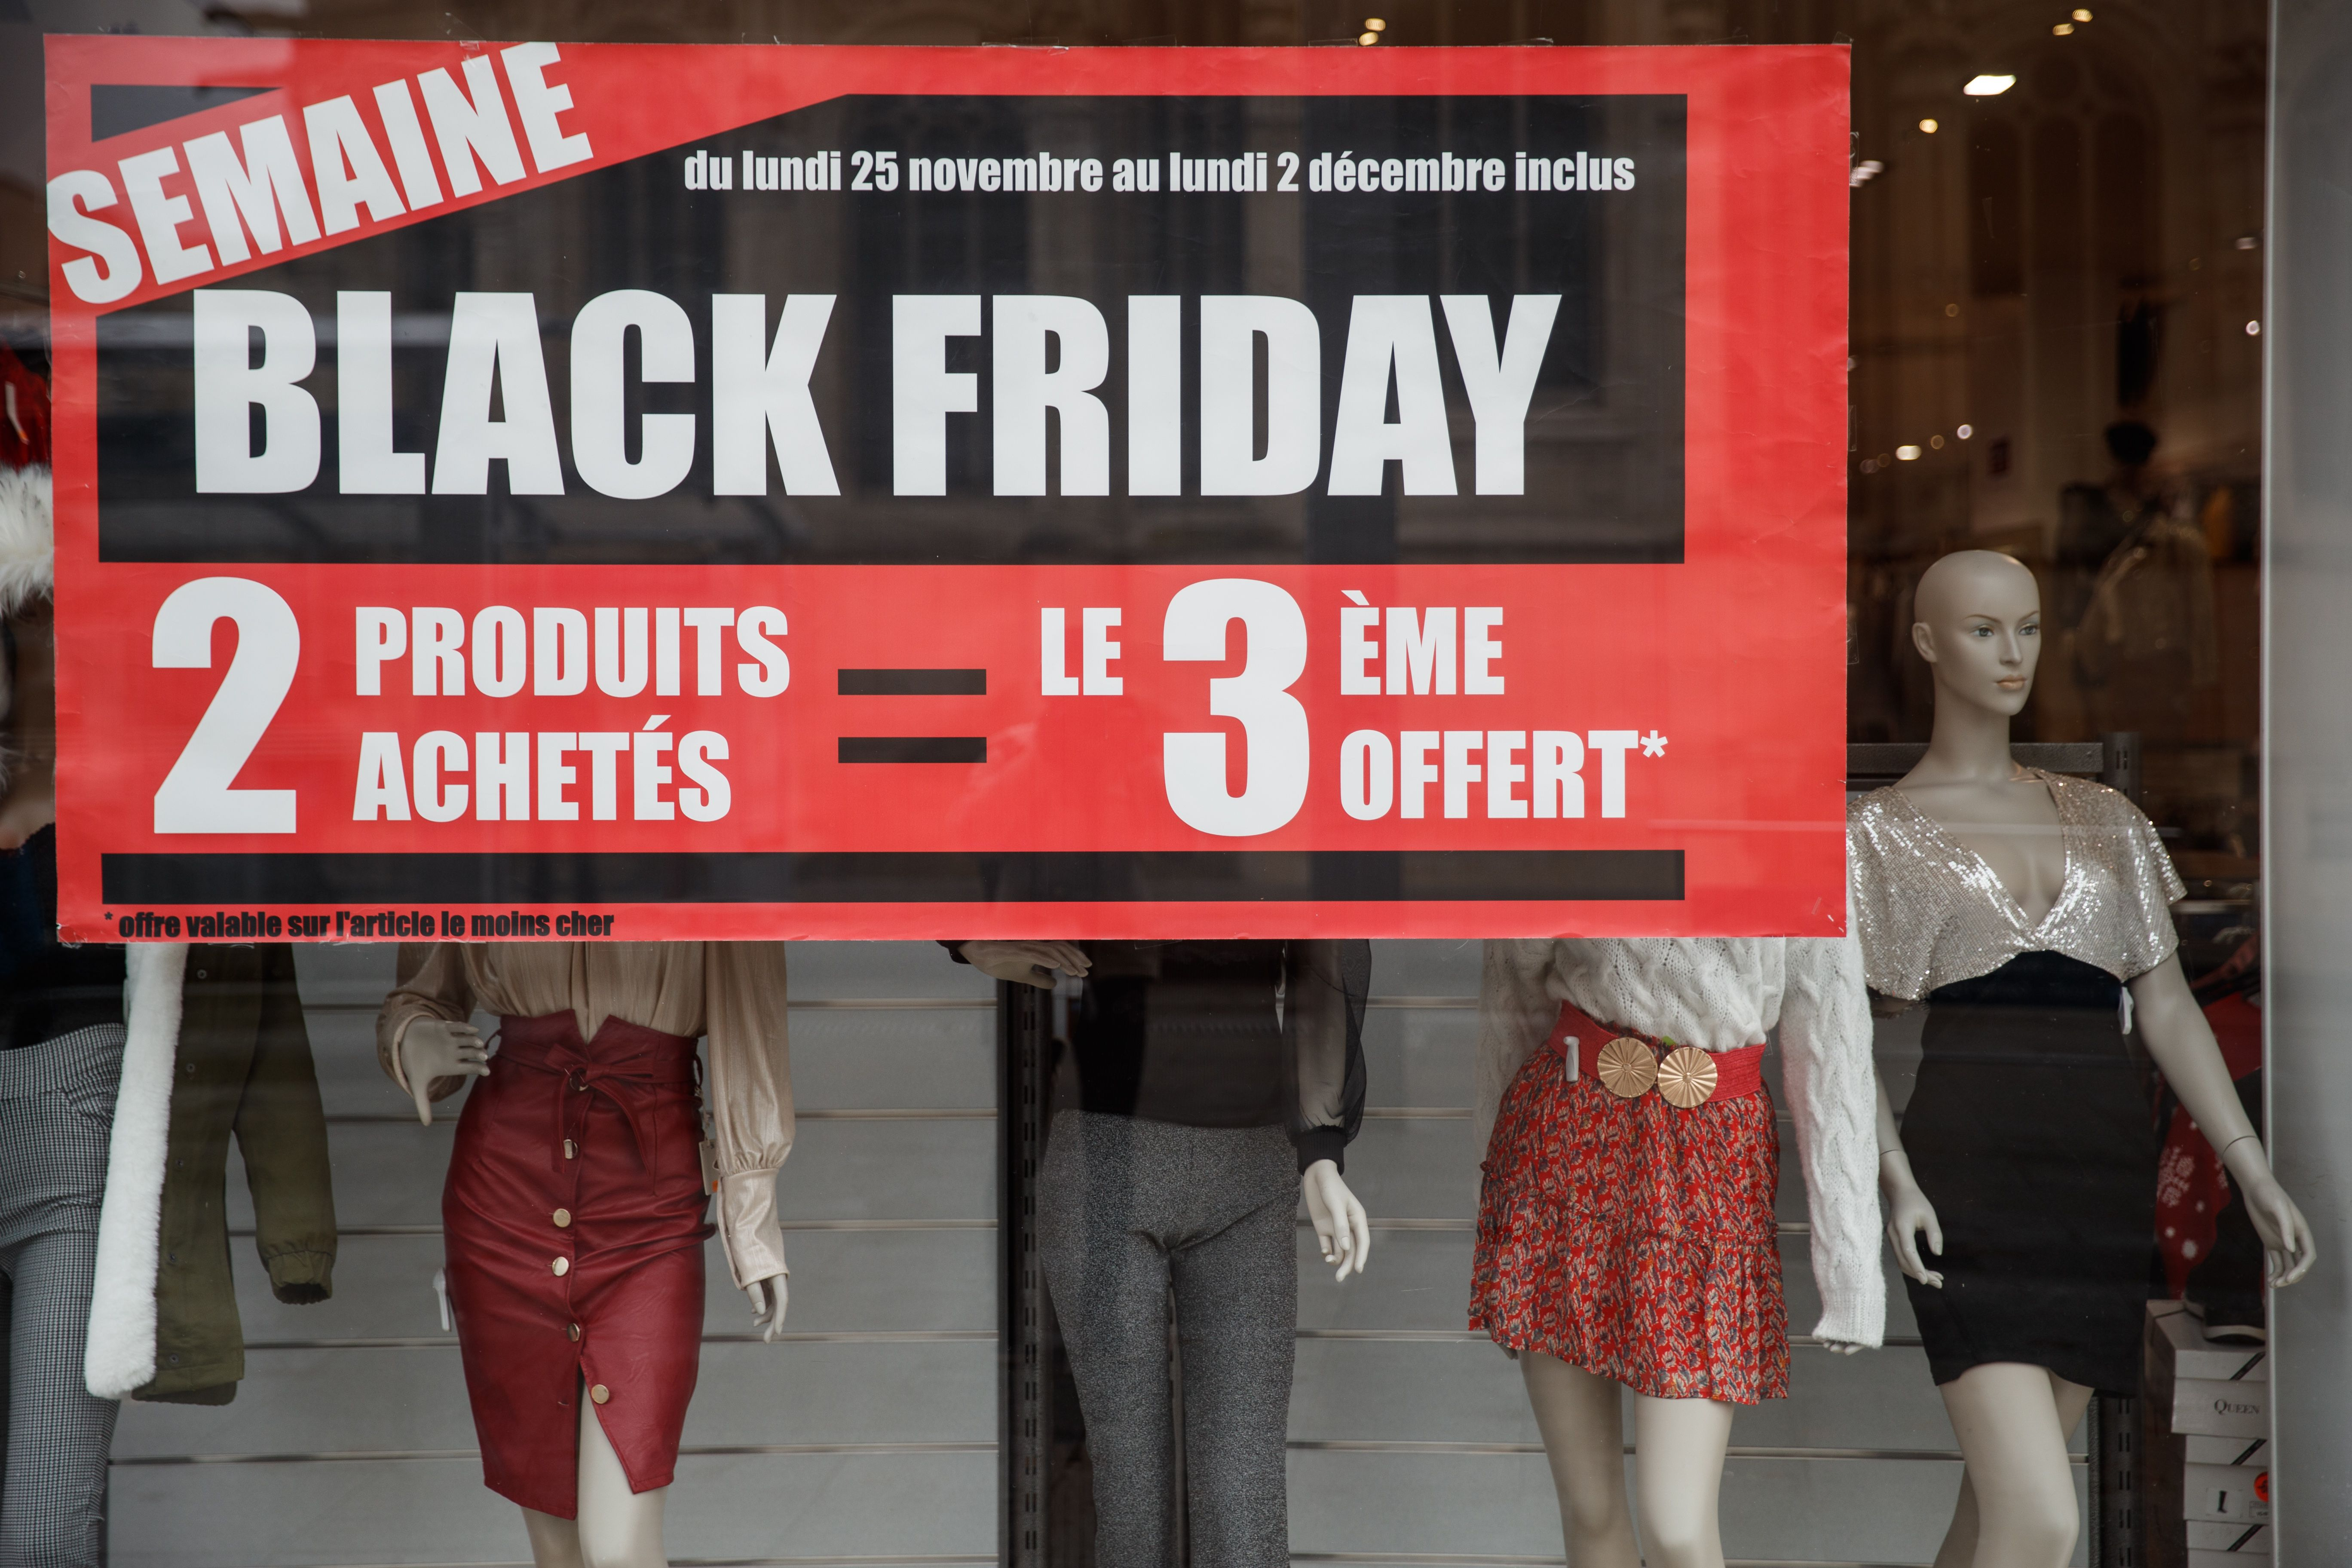 A picture shows a sign for Black Friday sales in a shop in Caen, northwestern France, on November 27, 2019.